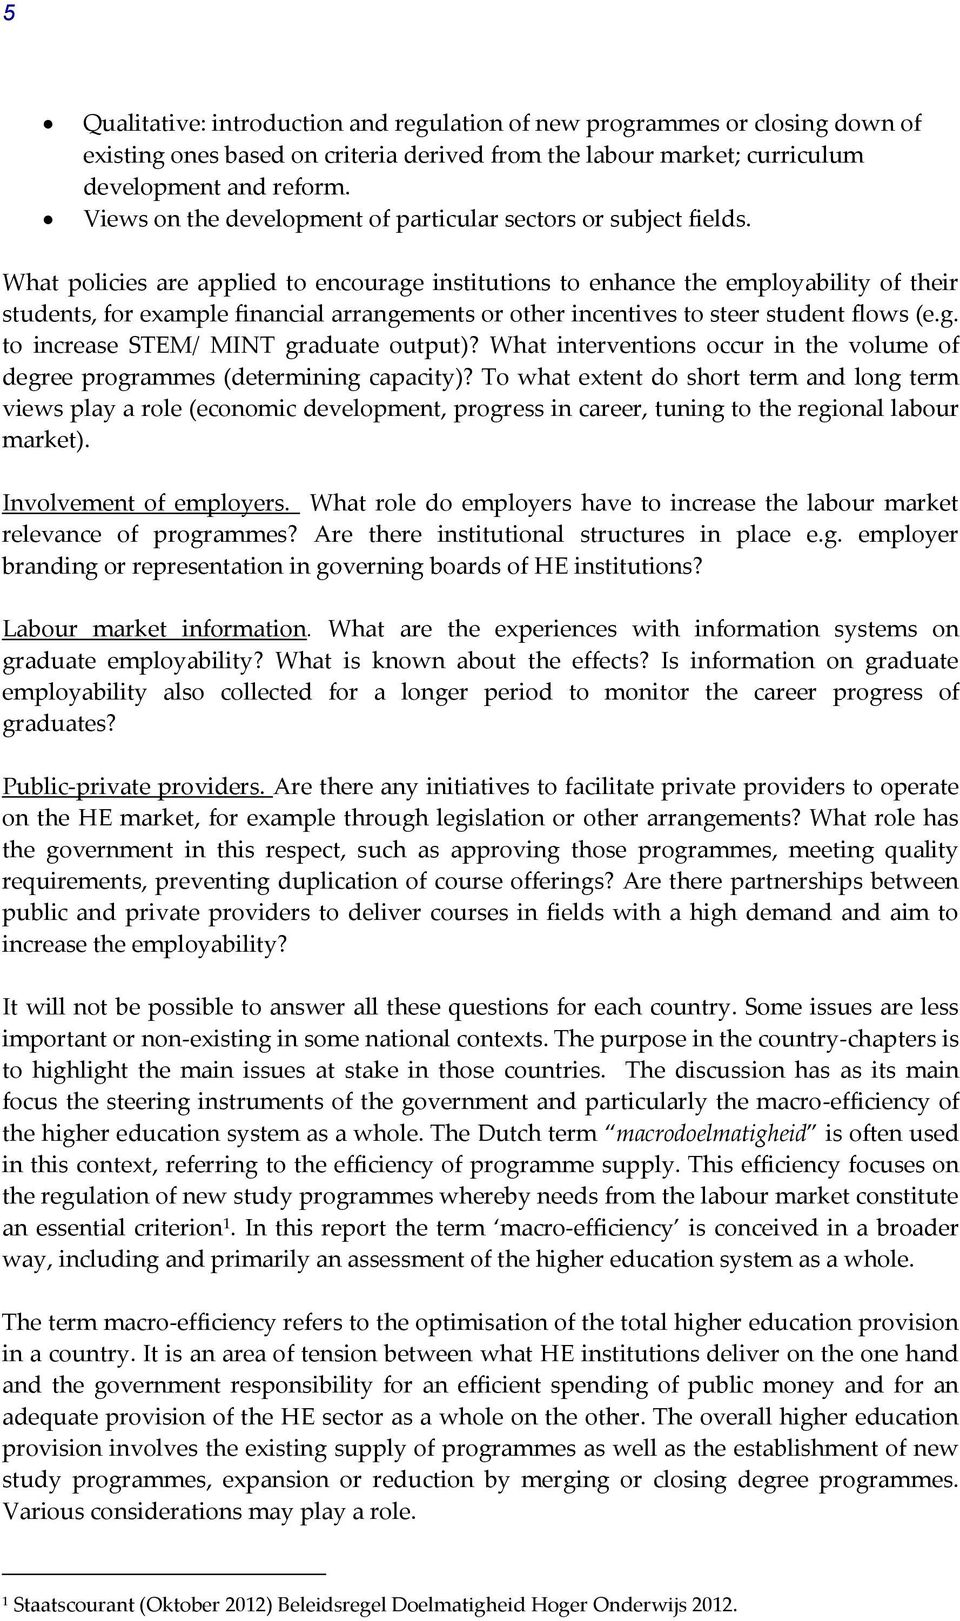 What policies are applied to encourage institutions to enhance the employability of their students, for example financial arrangements or other incentives to steer student flows (e.g. to increase STEM/ MINT graduate output)?